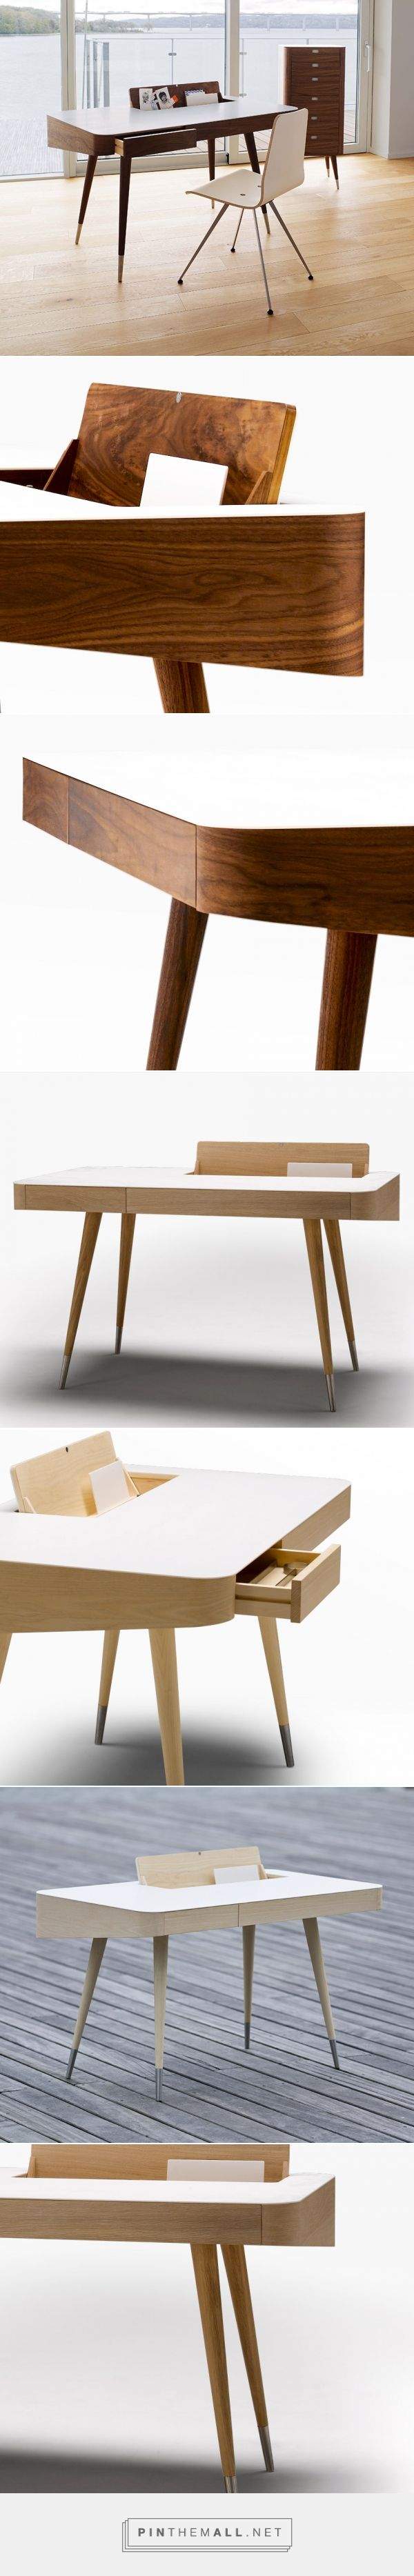 Retro Desk - Home Office Furniture from Wharfside - created via http://pinthemall.net